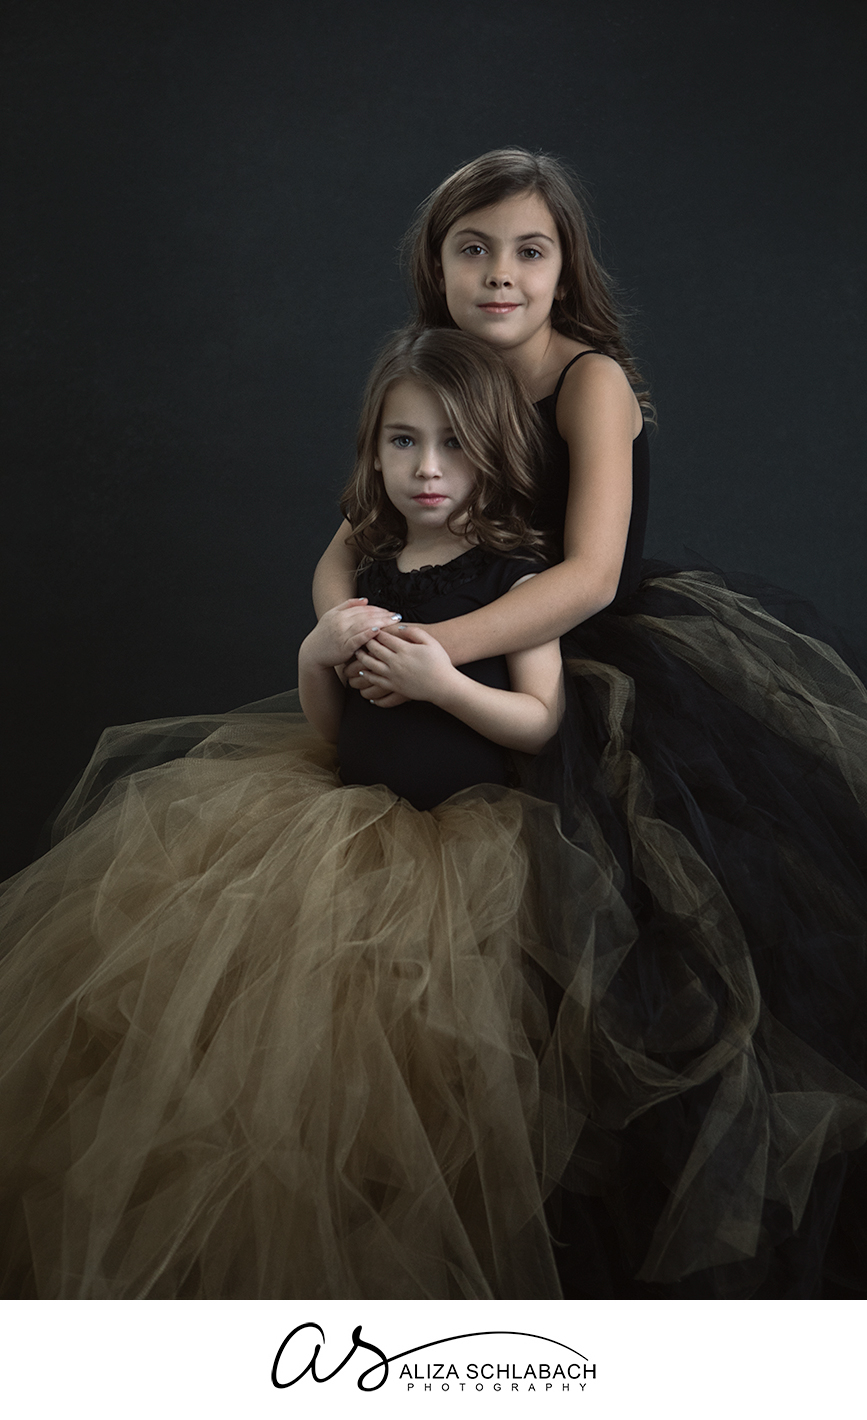 Studio portrait photography of little sisters in black and gold tulle skirts